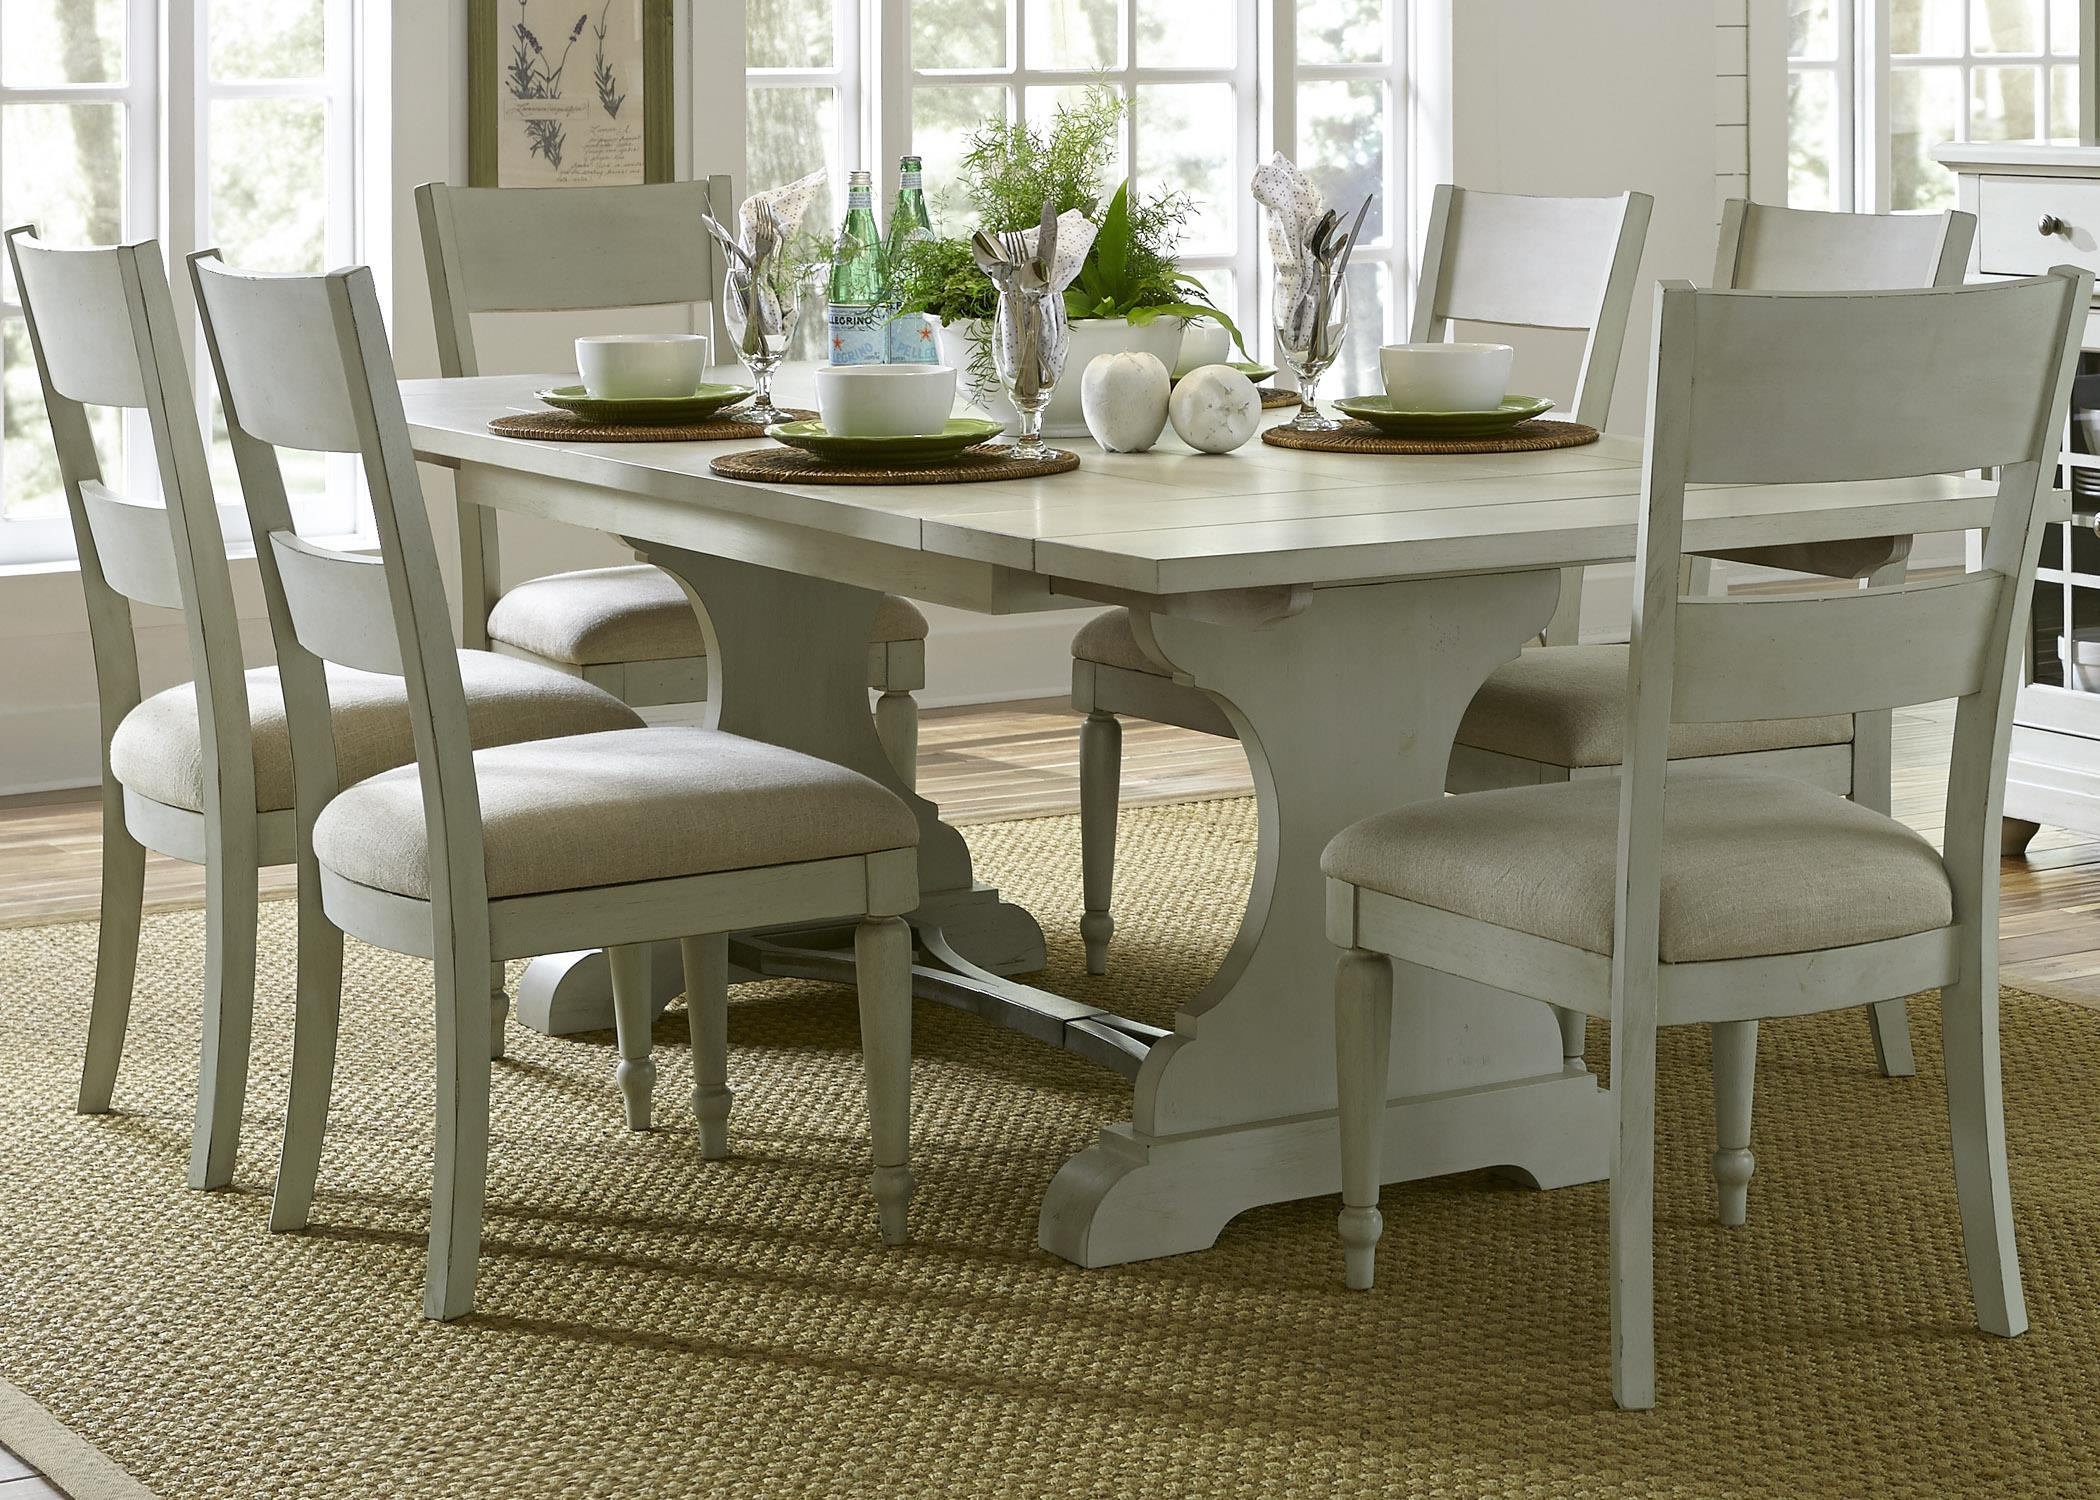 Liberty Furniture Harbor View Trestle Table and Chair Set - Item Number: 731-DR-7TRS